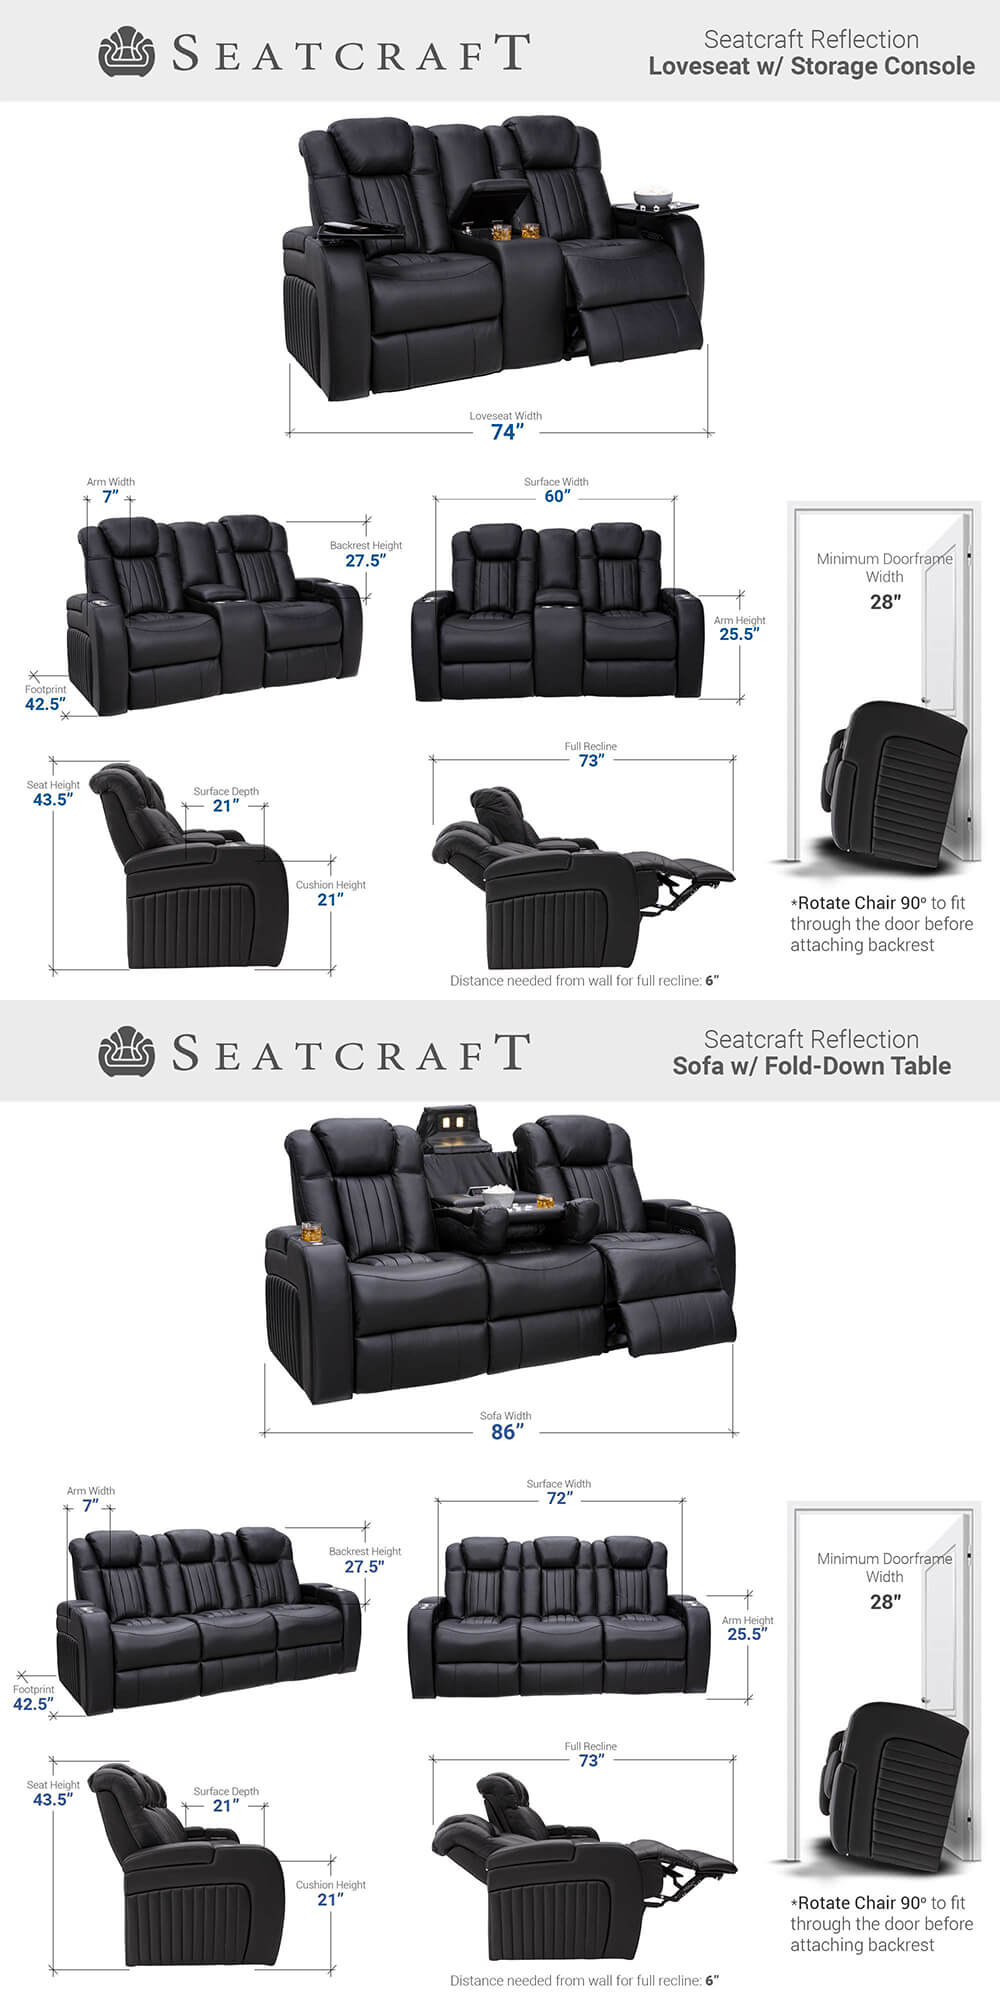 Seatcraft Tiberius Home Theater Sofa & Loveseat